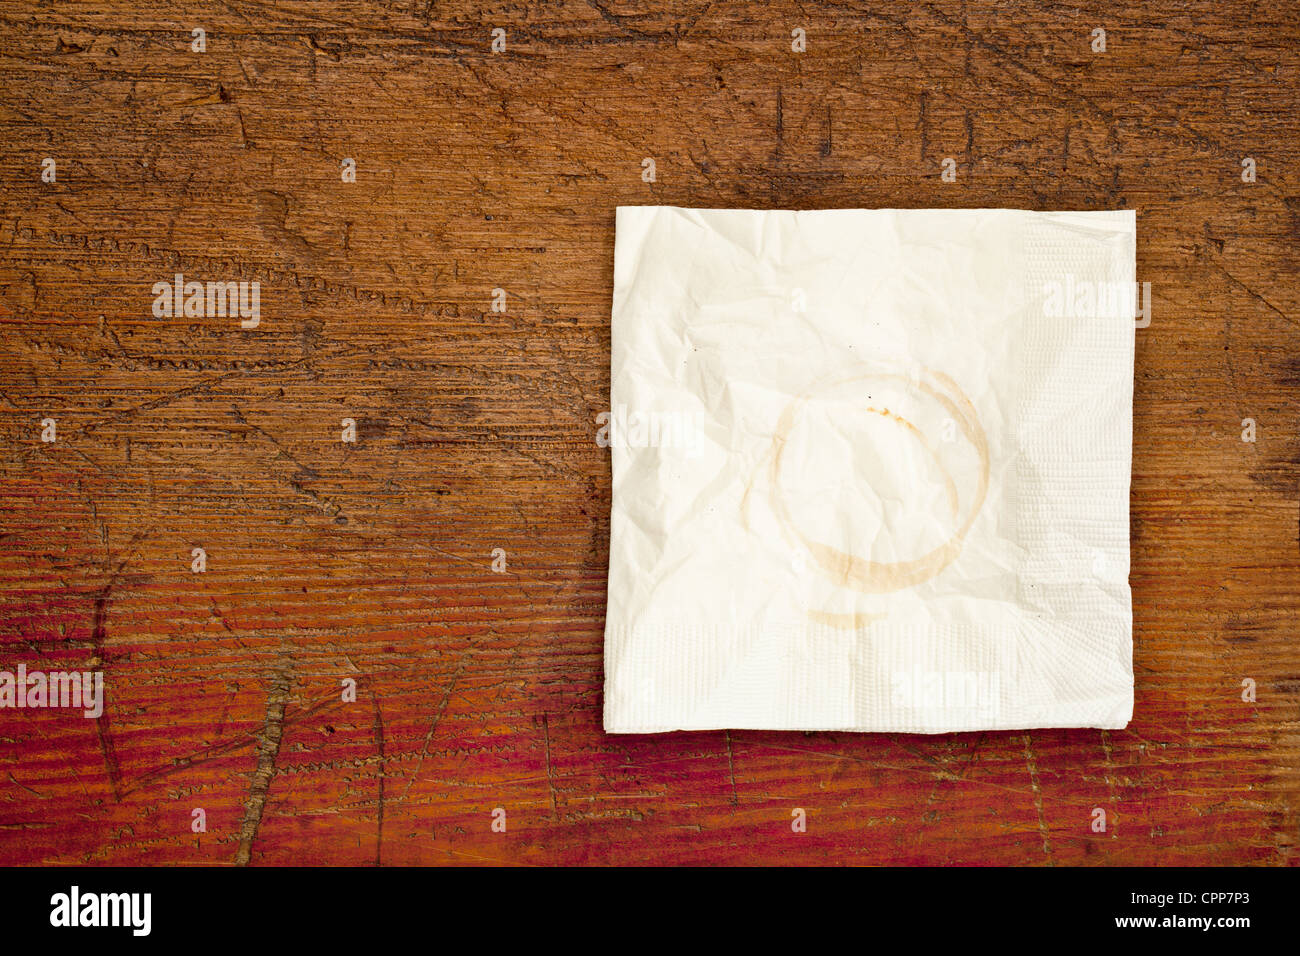 napkin with coffee stains on a grunge scratched wooden table - Stock Image